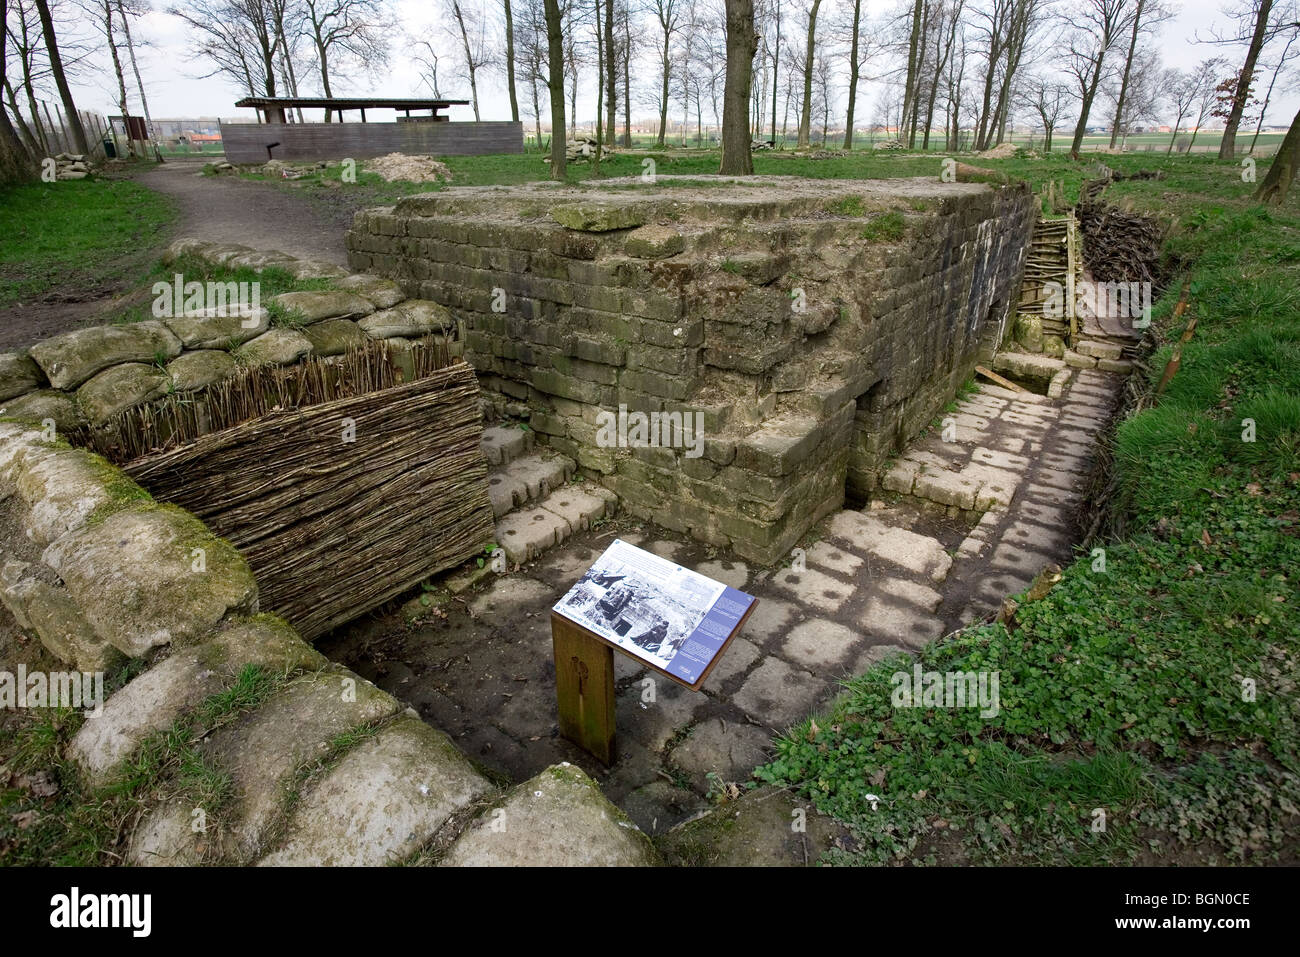 Bayernwald, a site with German WW1 trenches from the First World War at Wijtschate, Kemmel, Belgium - Stock Image